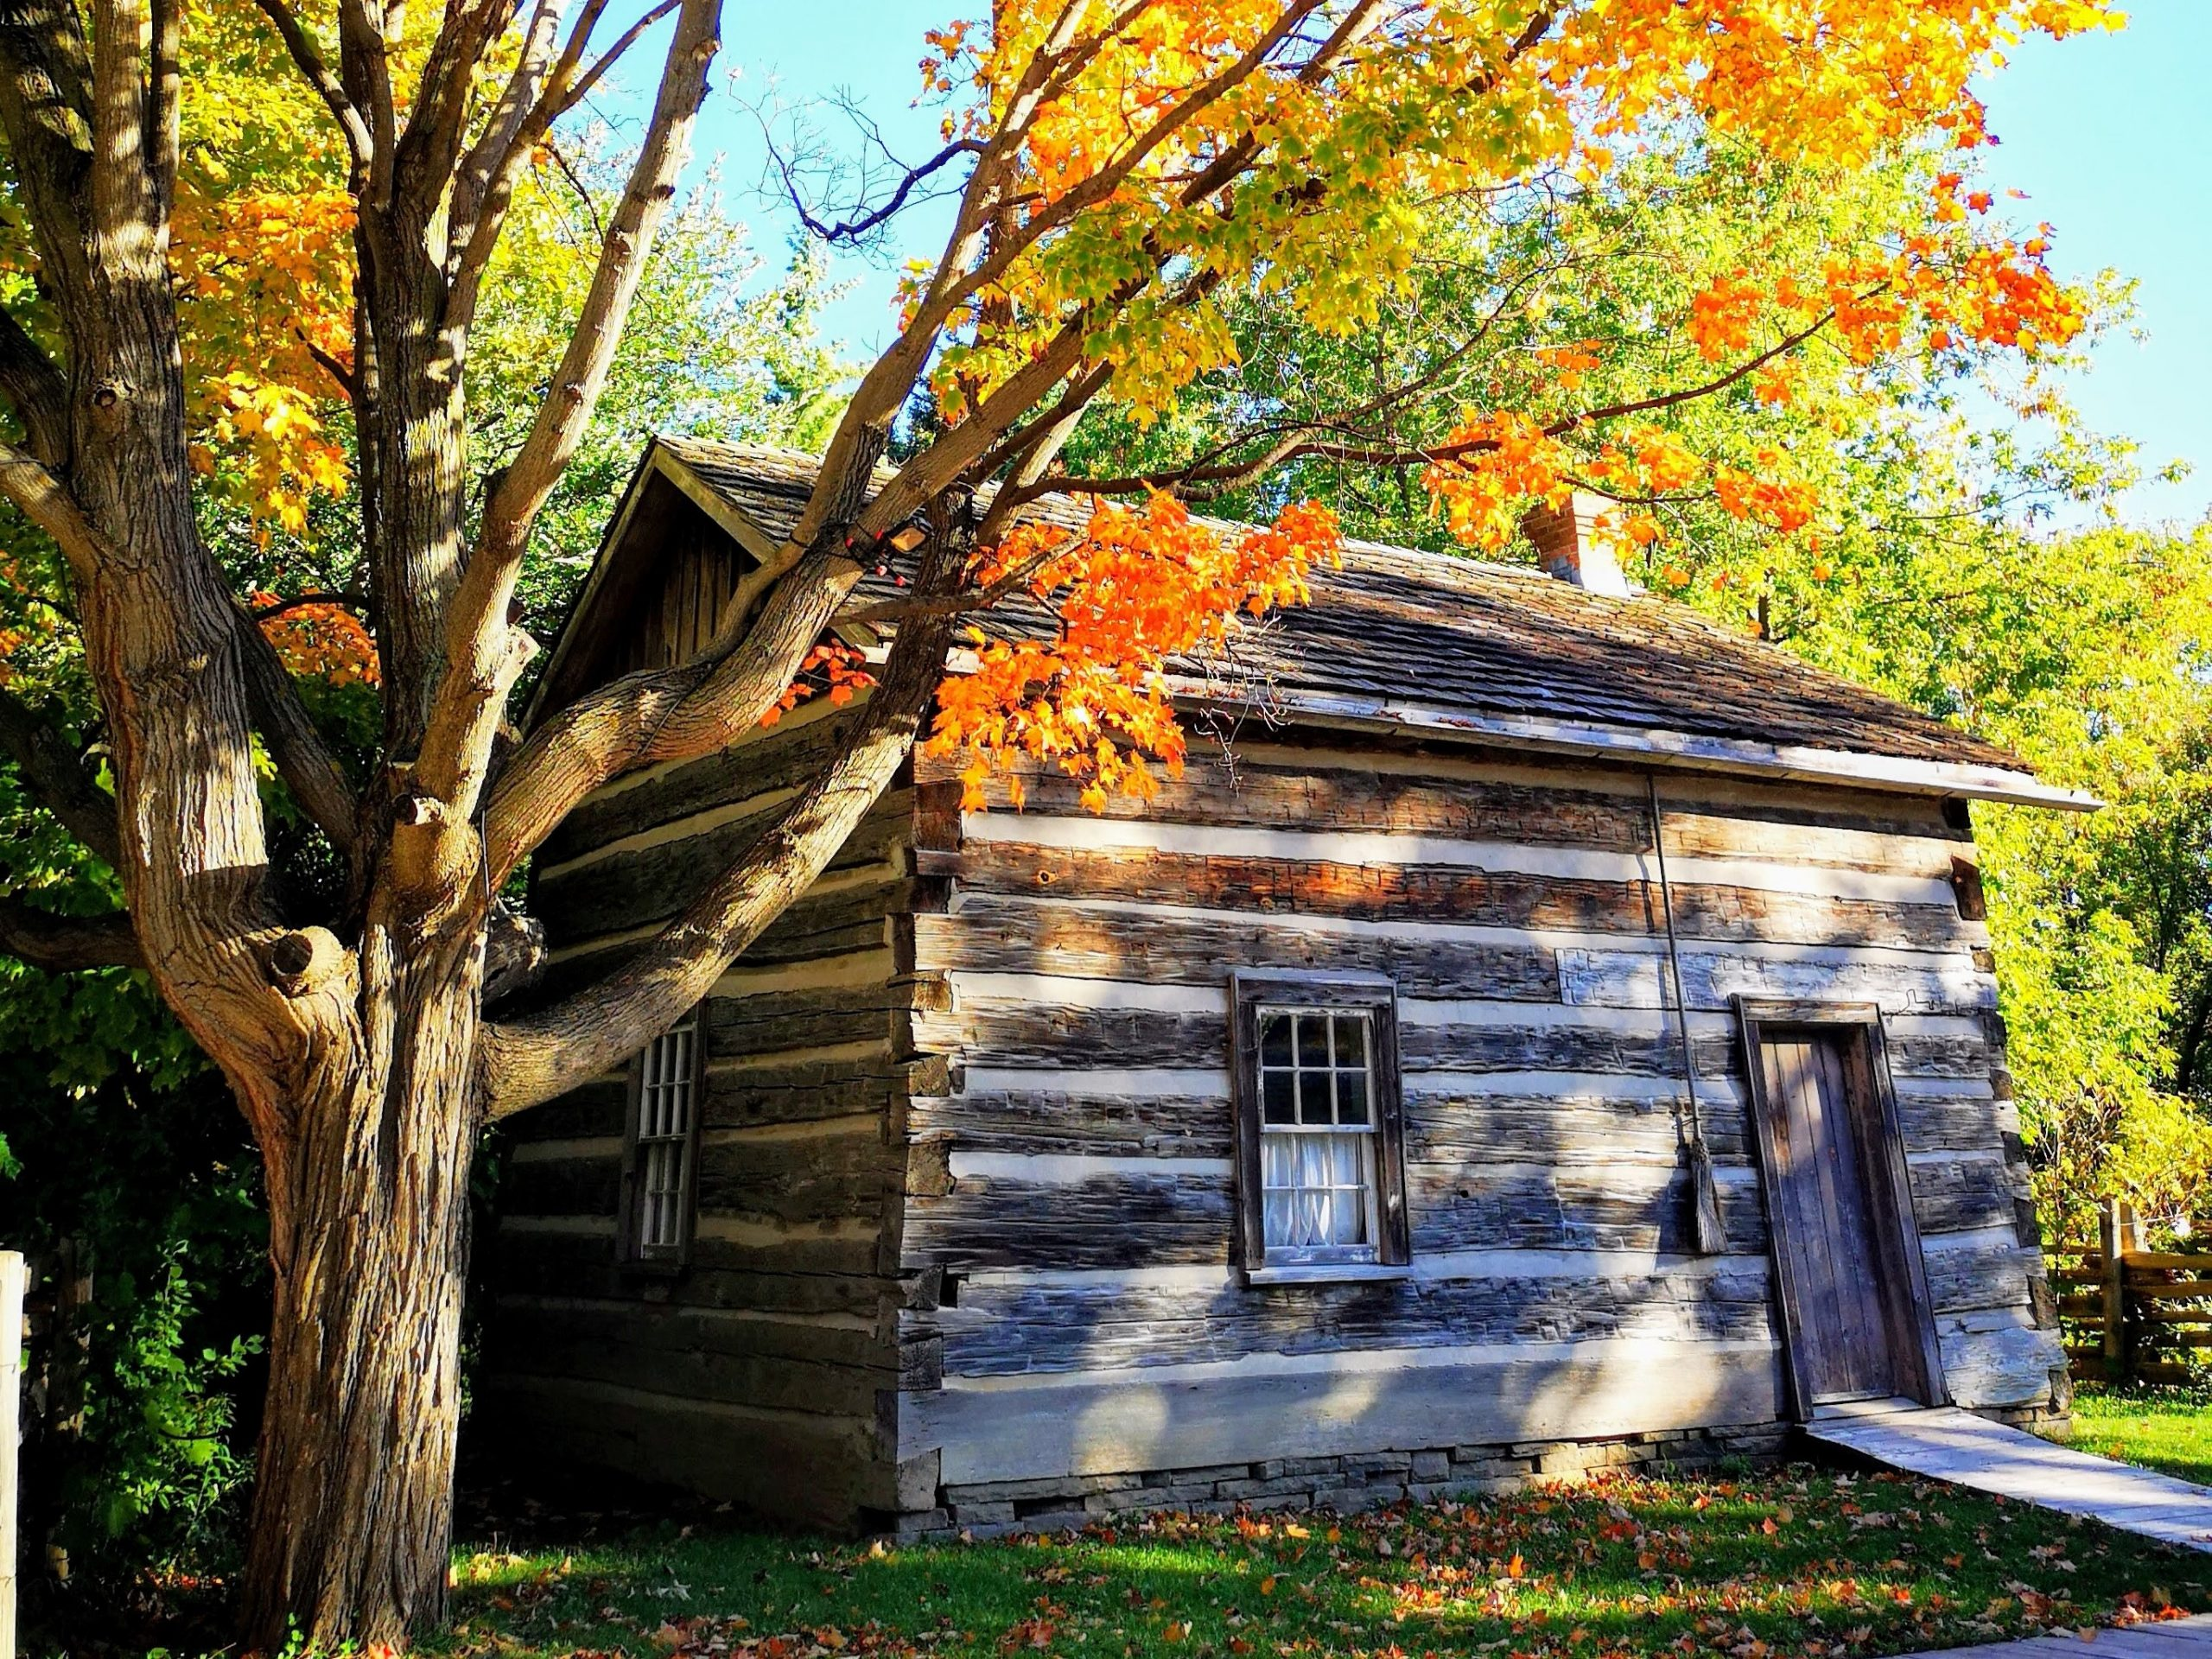 A log cabin during autumn